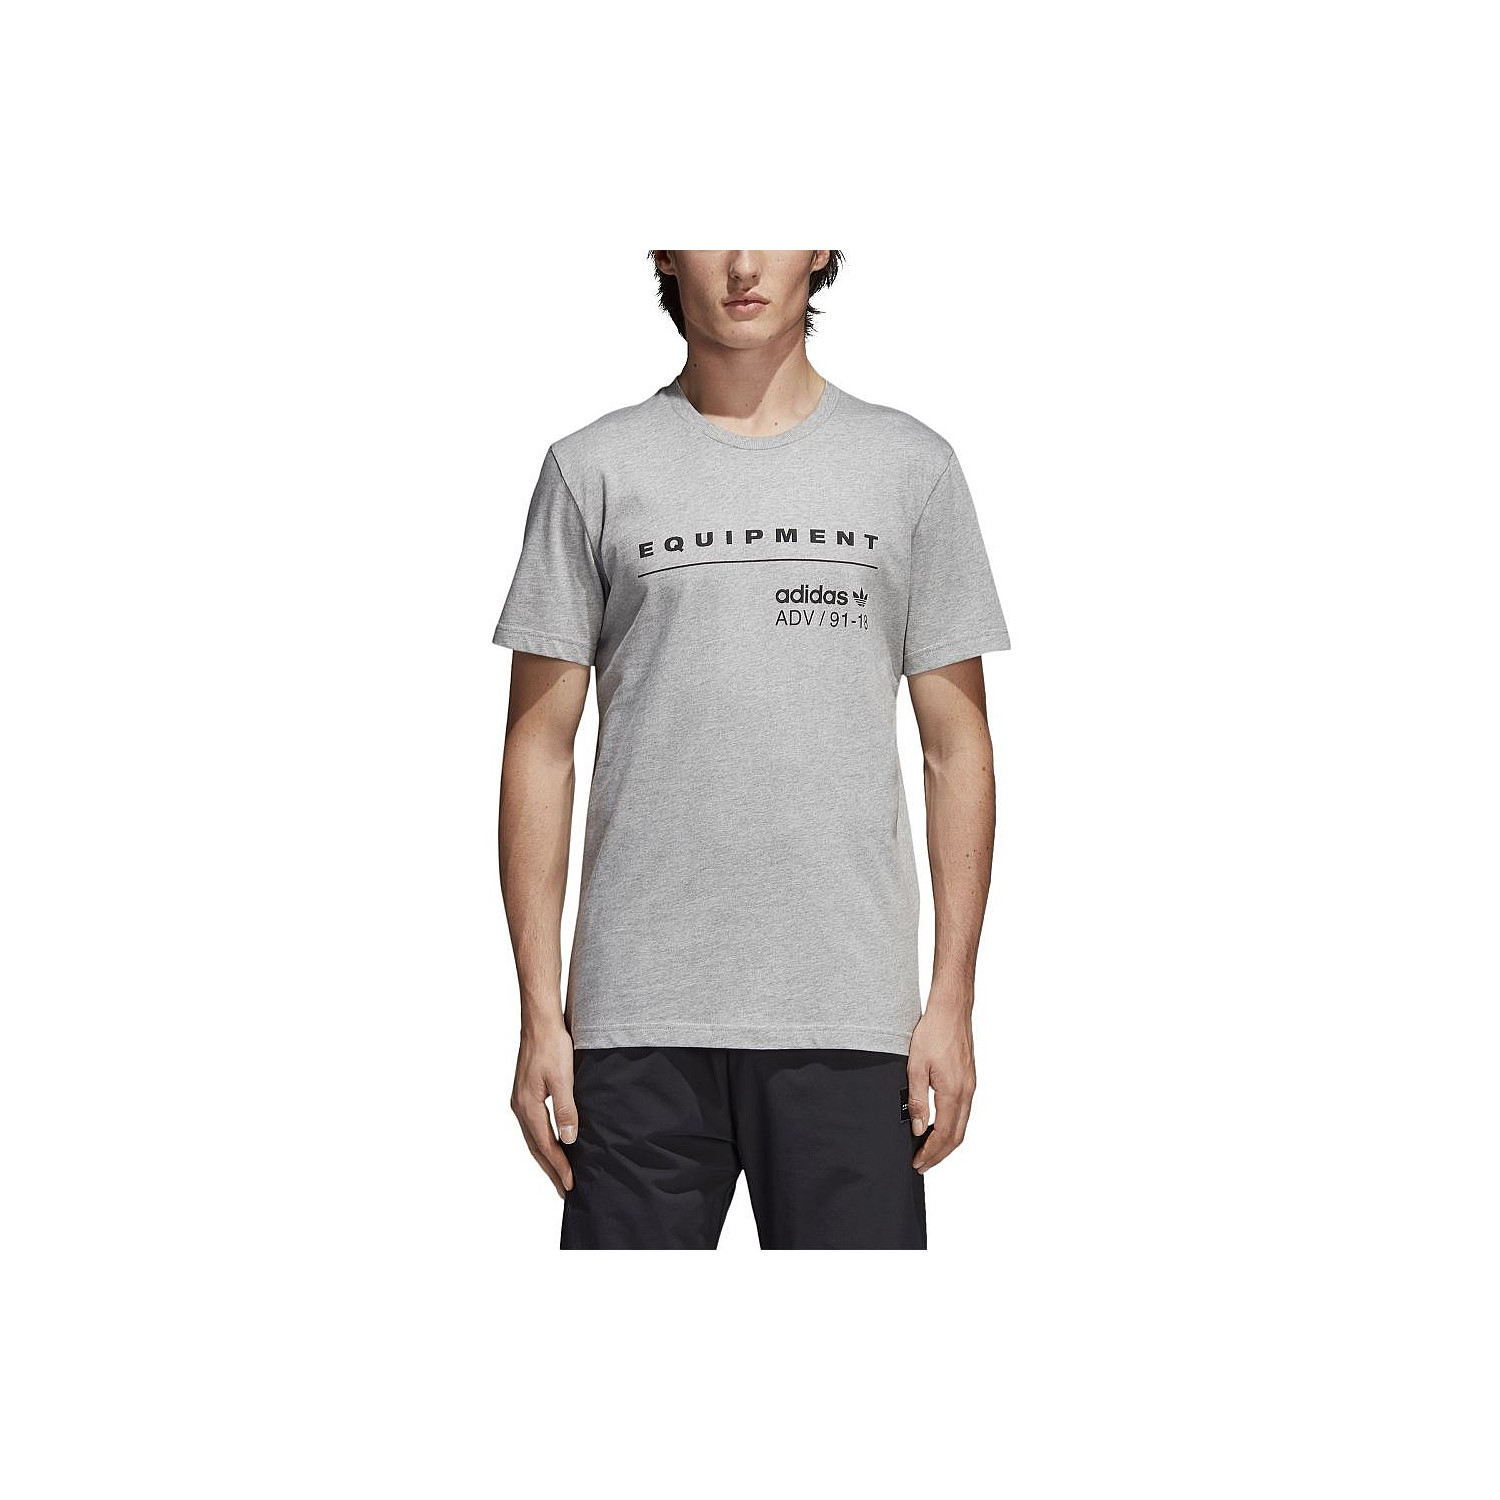 size 40 aa04f 7e564 This mens t-shirt features the iconic Equipment logo on the front chest,  while a small ADV badge pops above a hem. The athletic cut in all cotton  looks ...